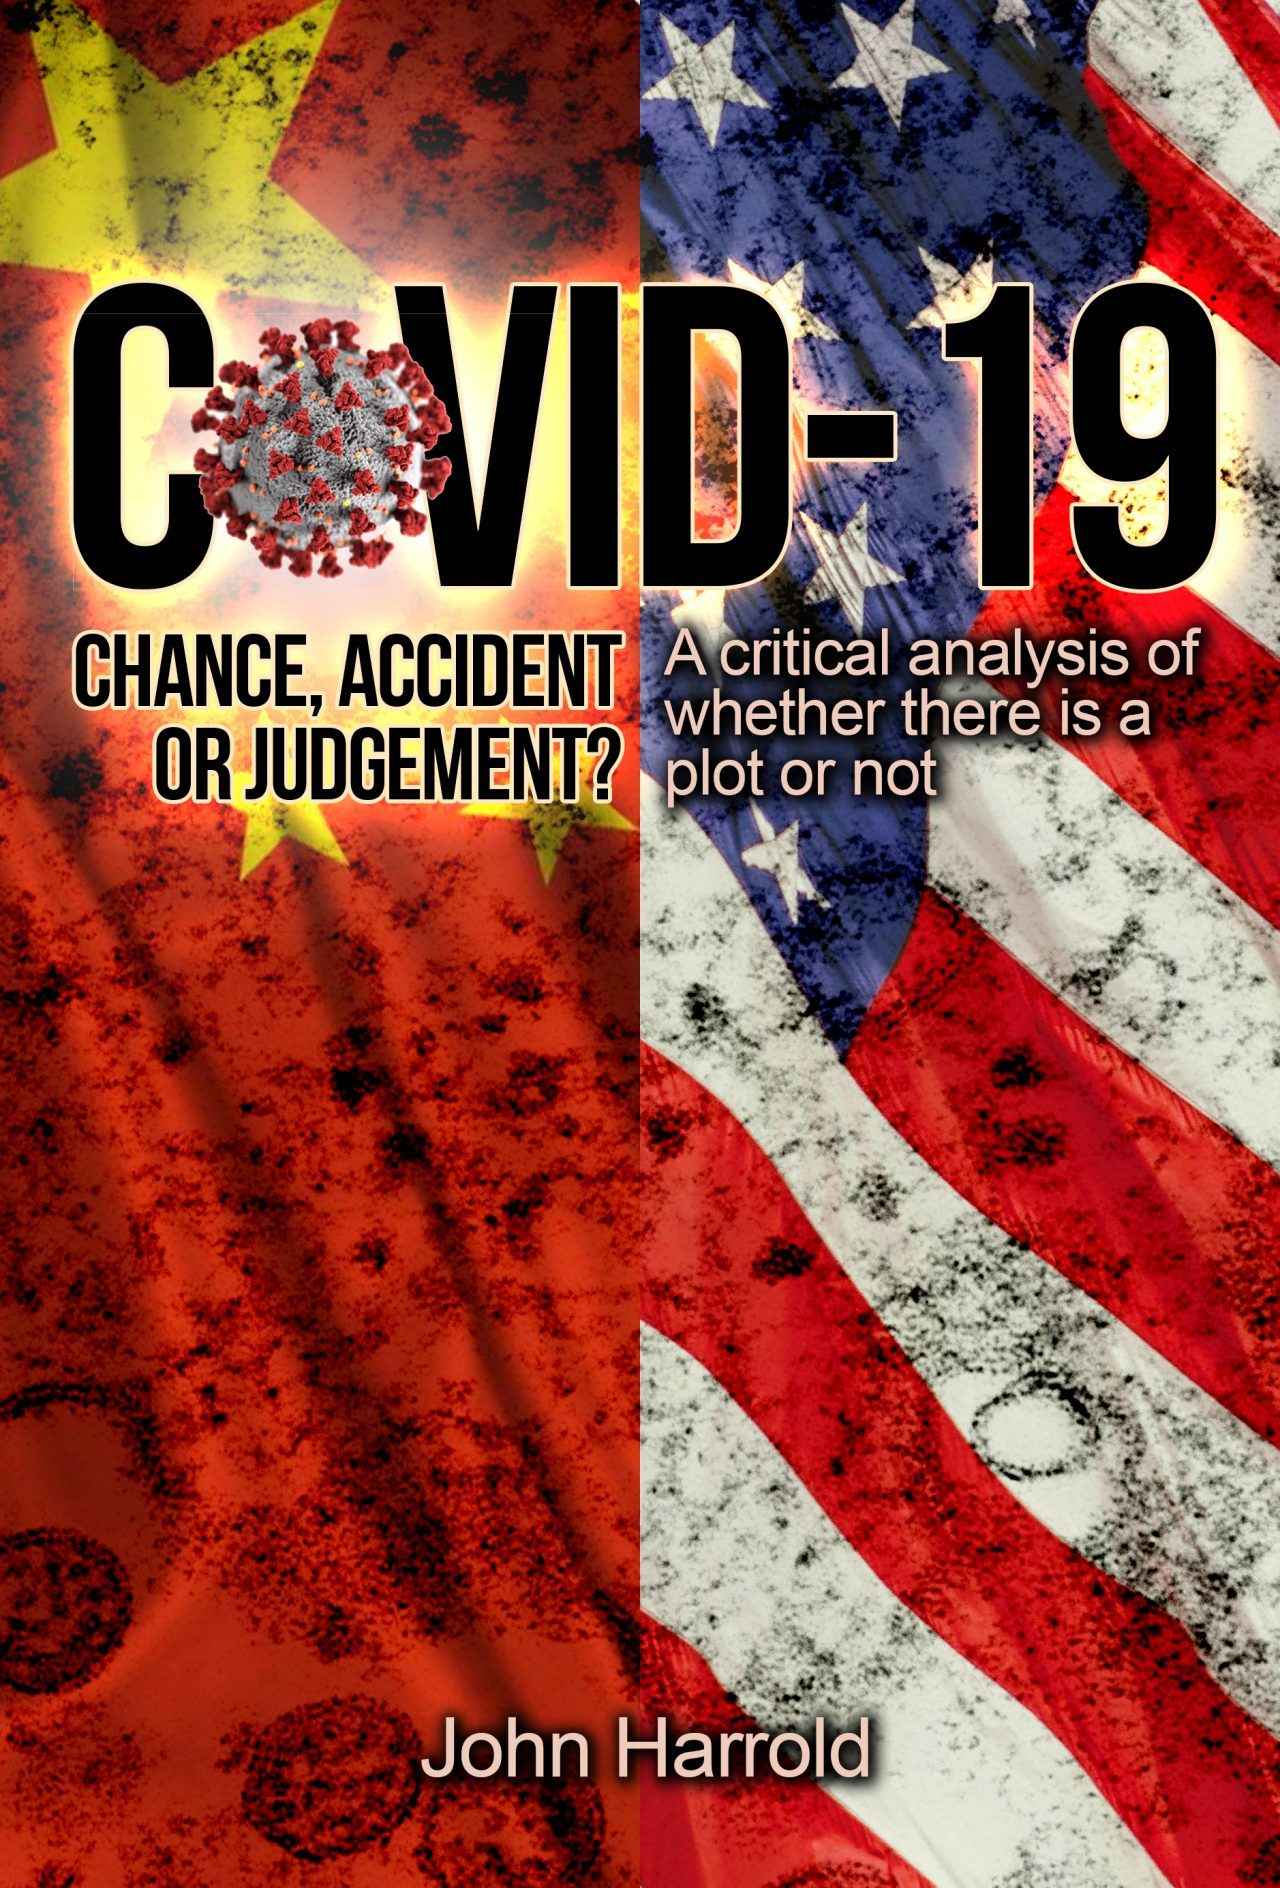 COVID-19 Chance, Accident or Judgement - Initial Draft - 120820